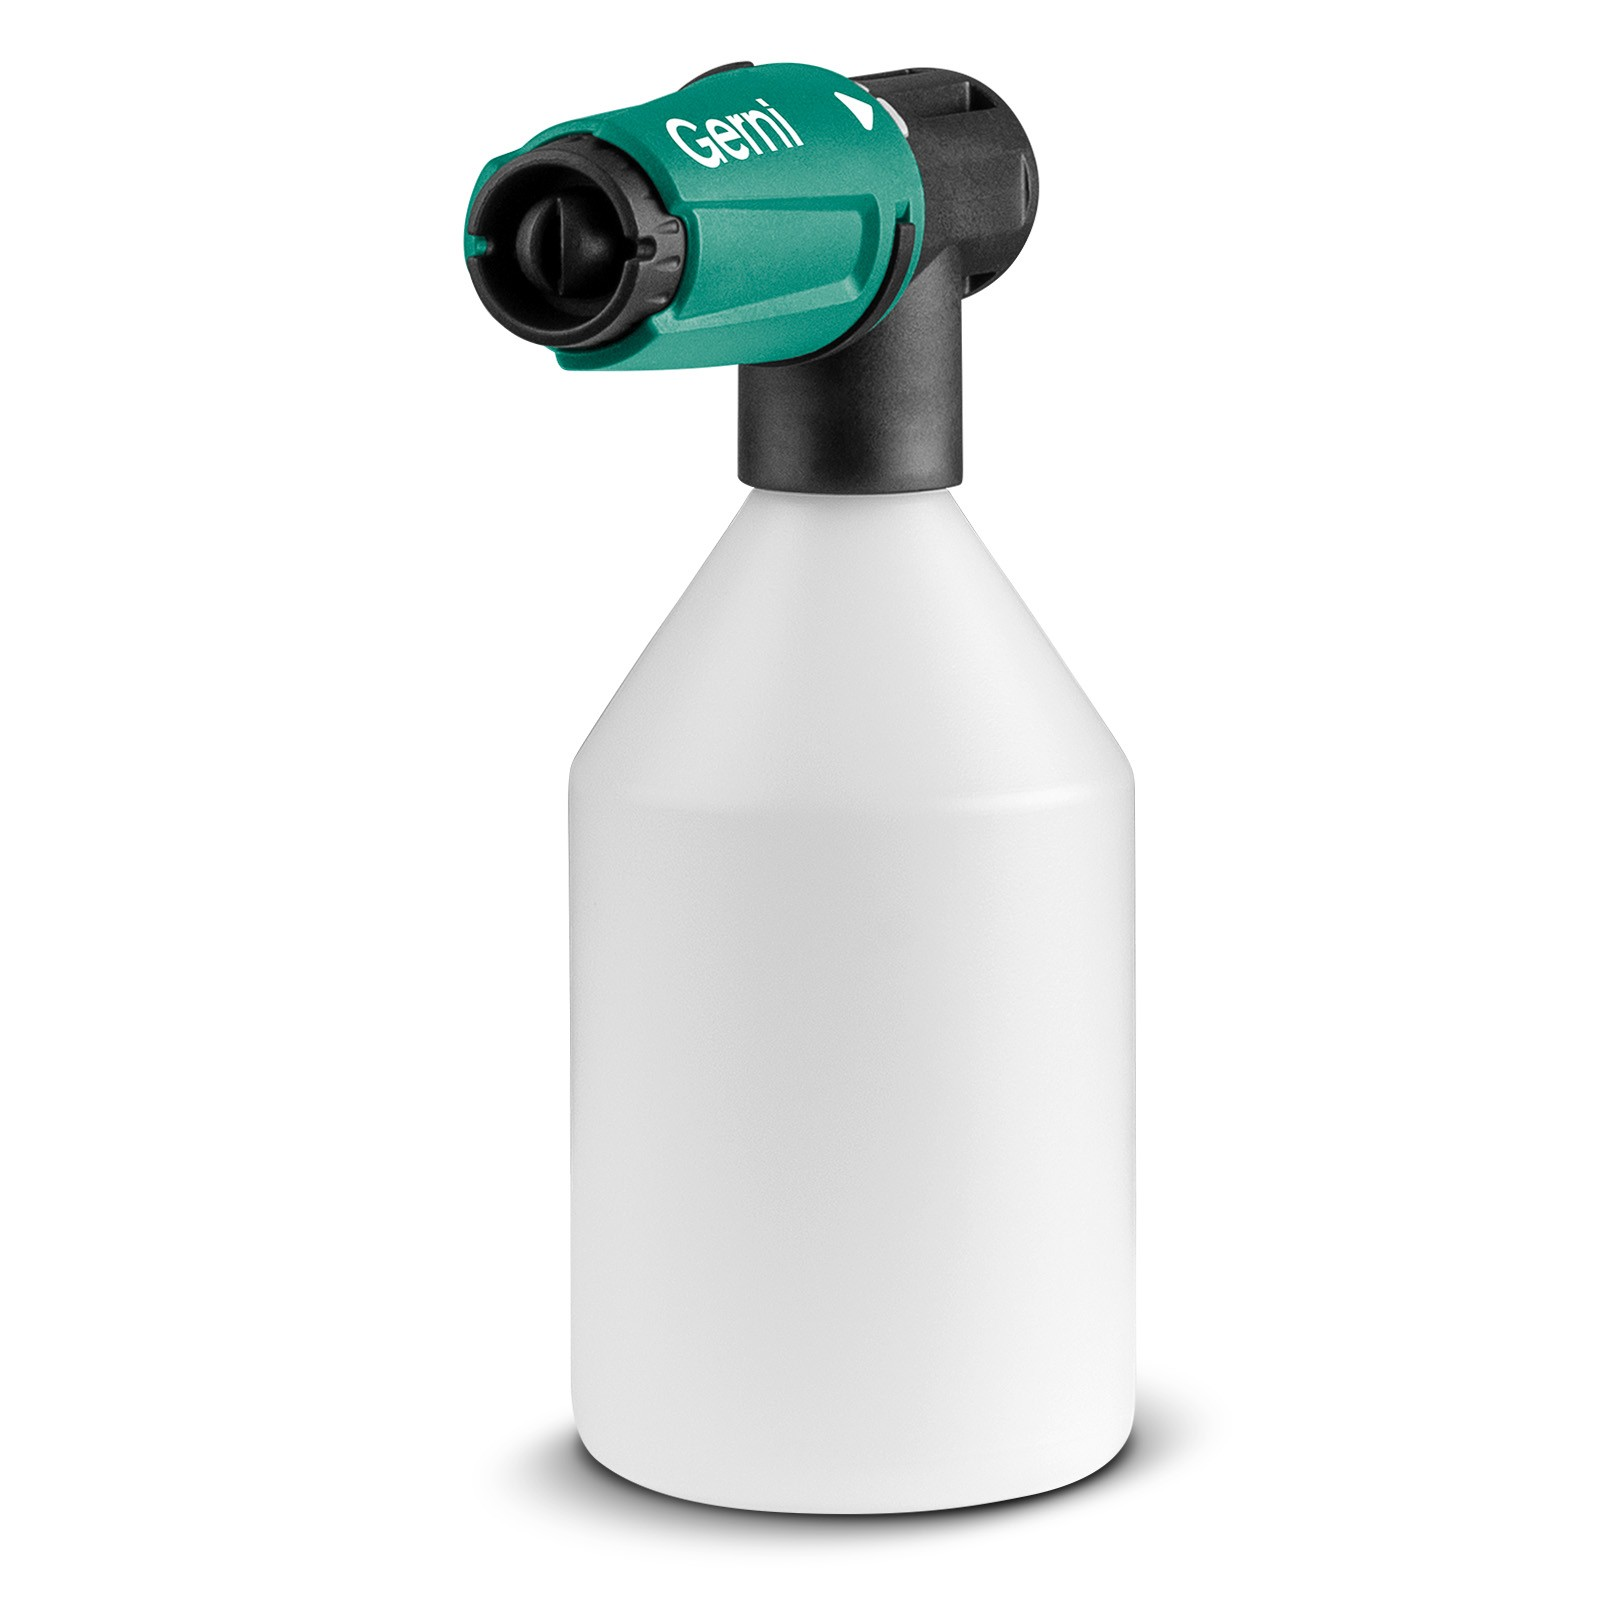 Gerni Super Foam Sprayer - Hero